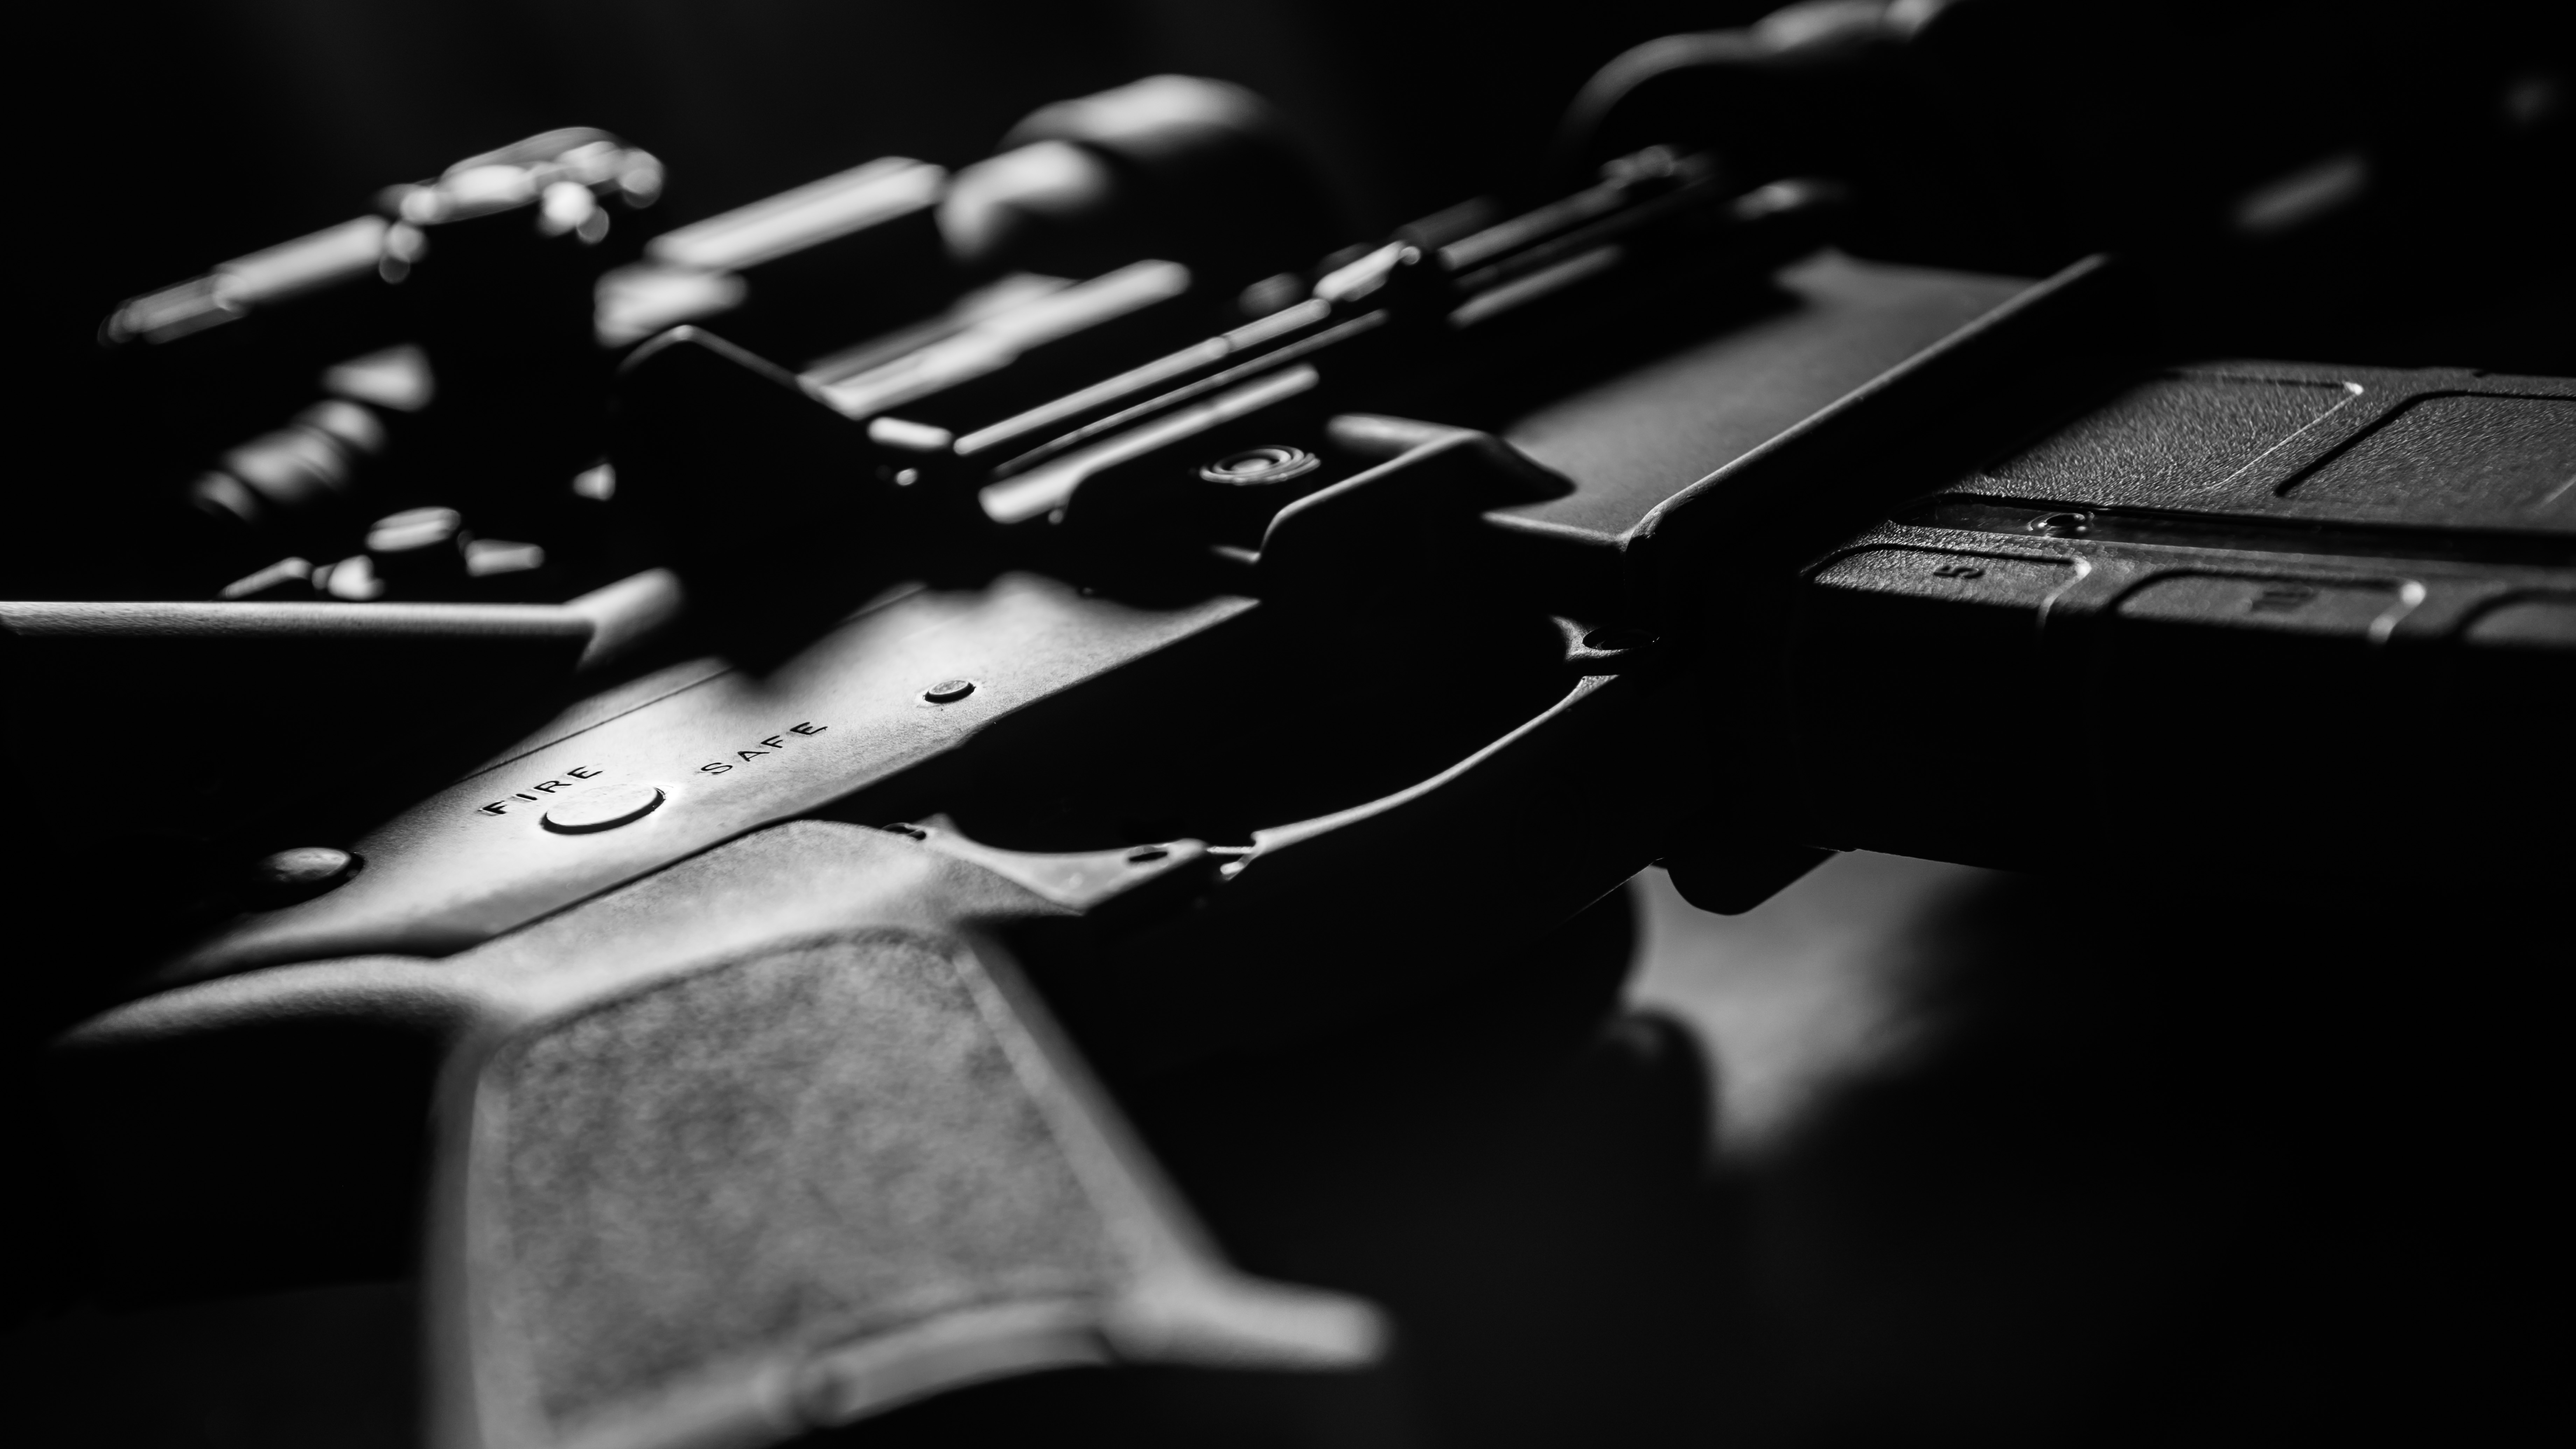 Law Allows Attorneys to Store Guns for Clients